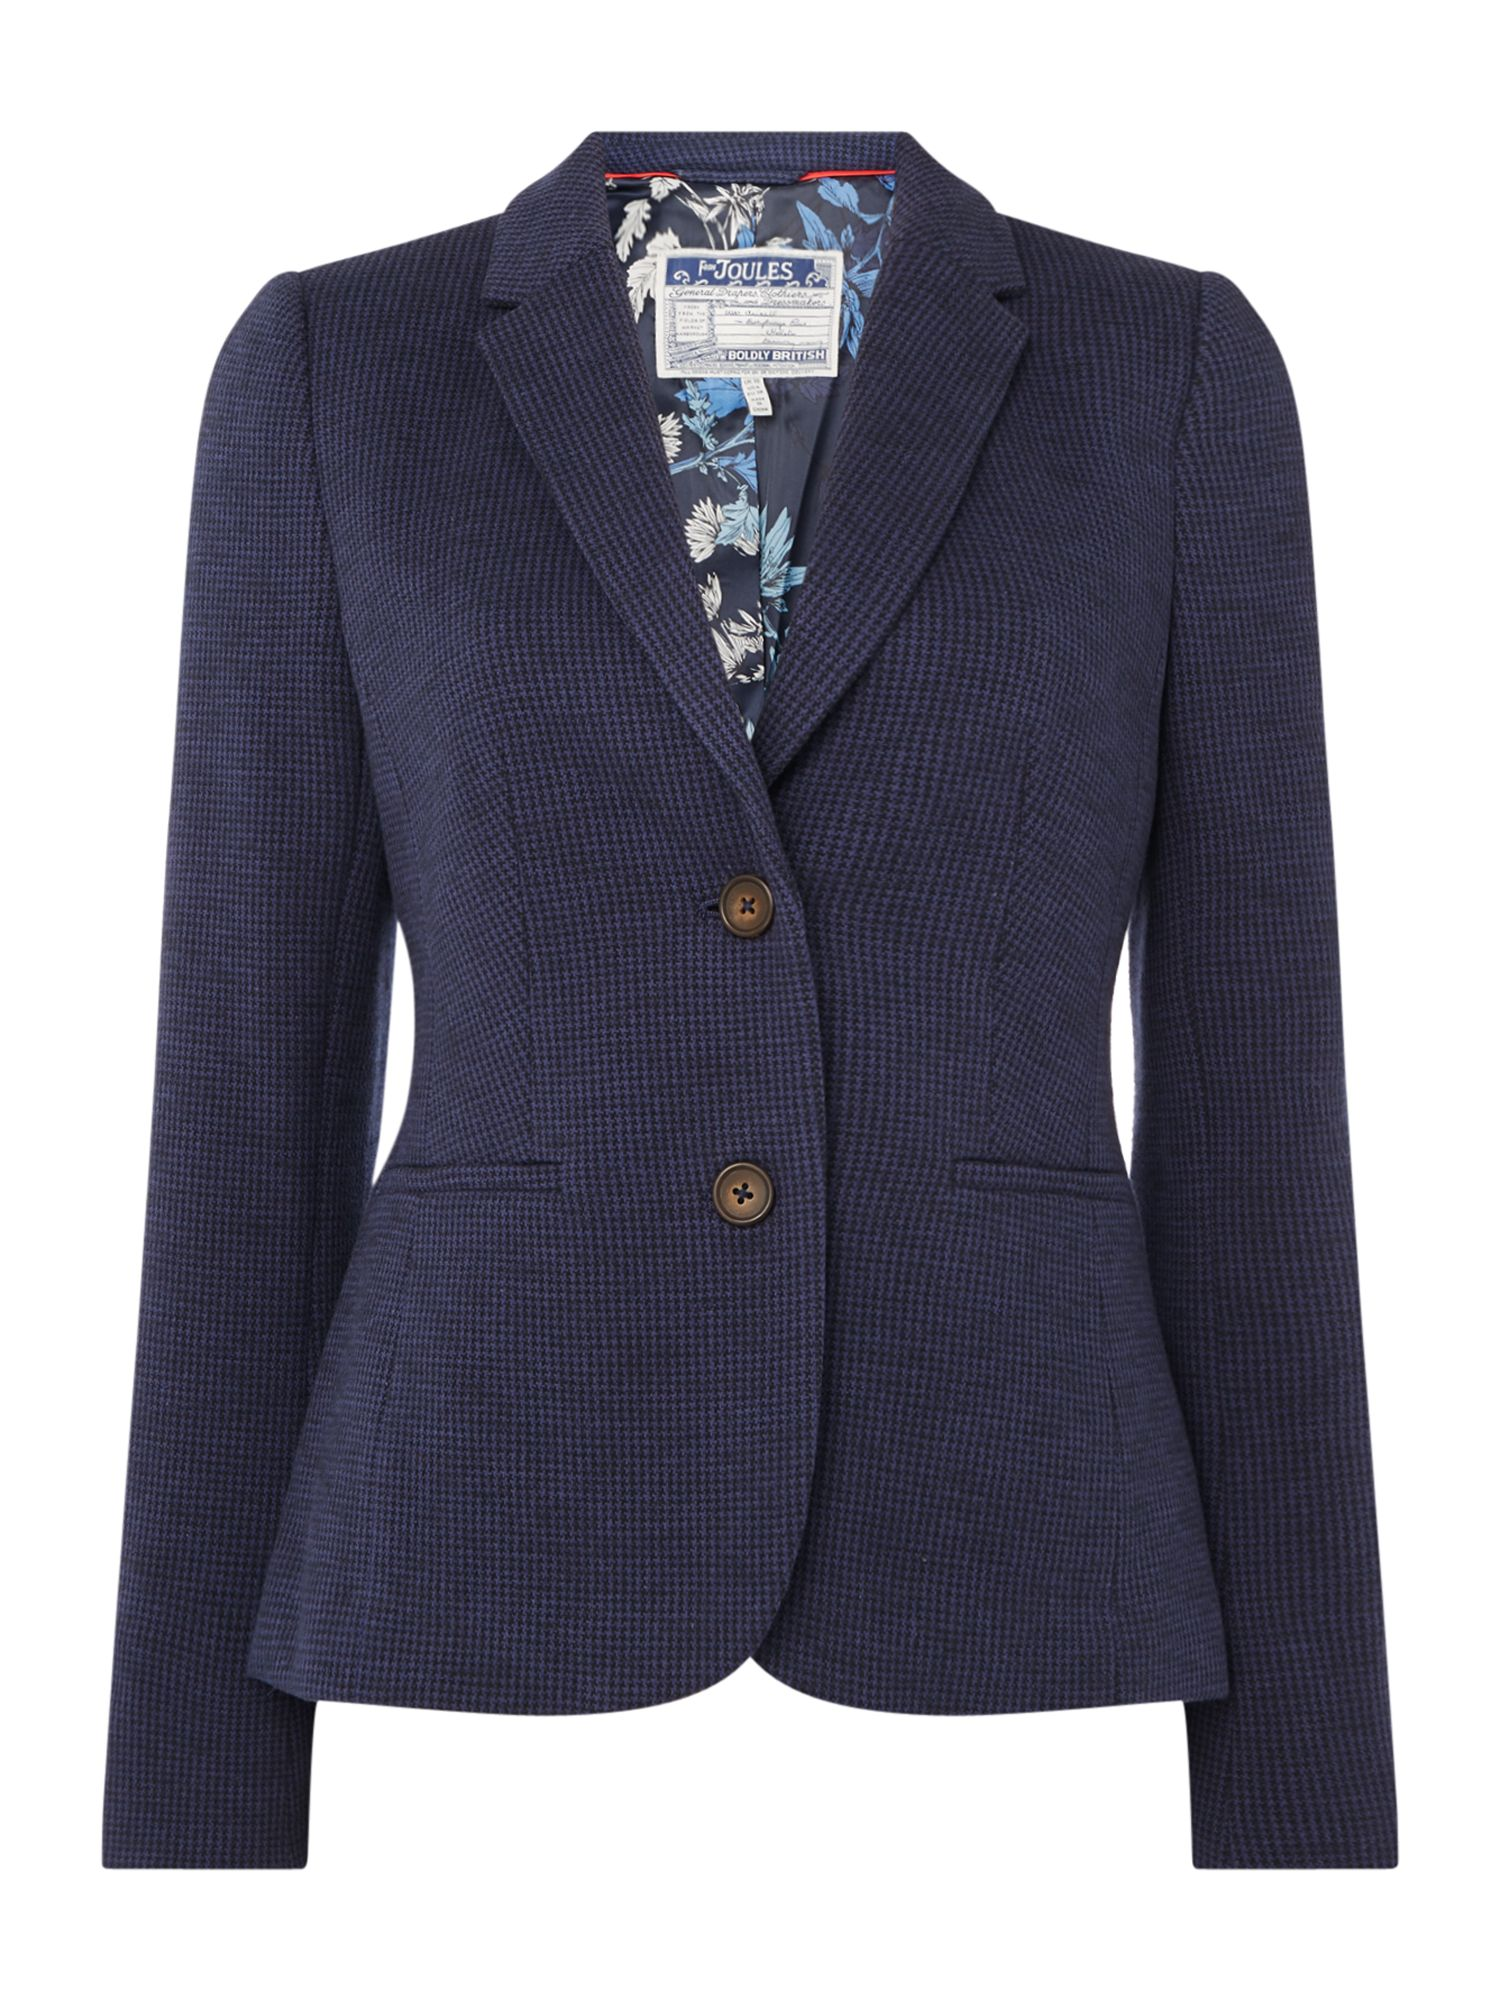 Joules JERSEY TWEED BLAZER, Blue